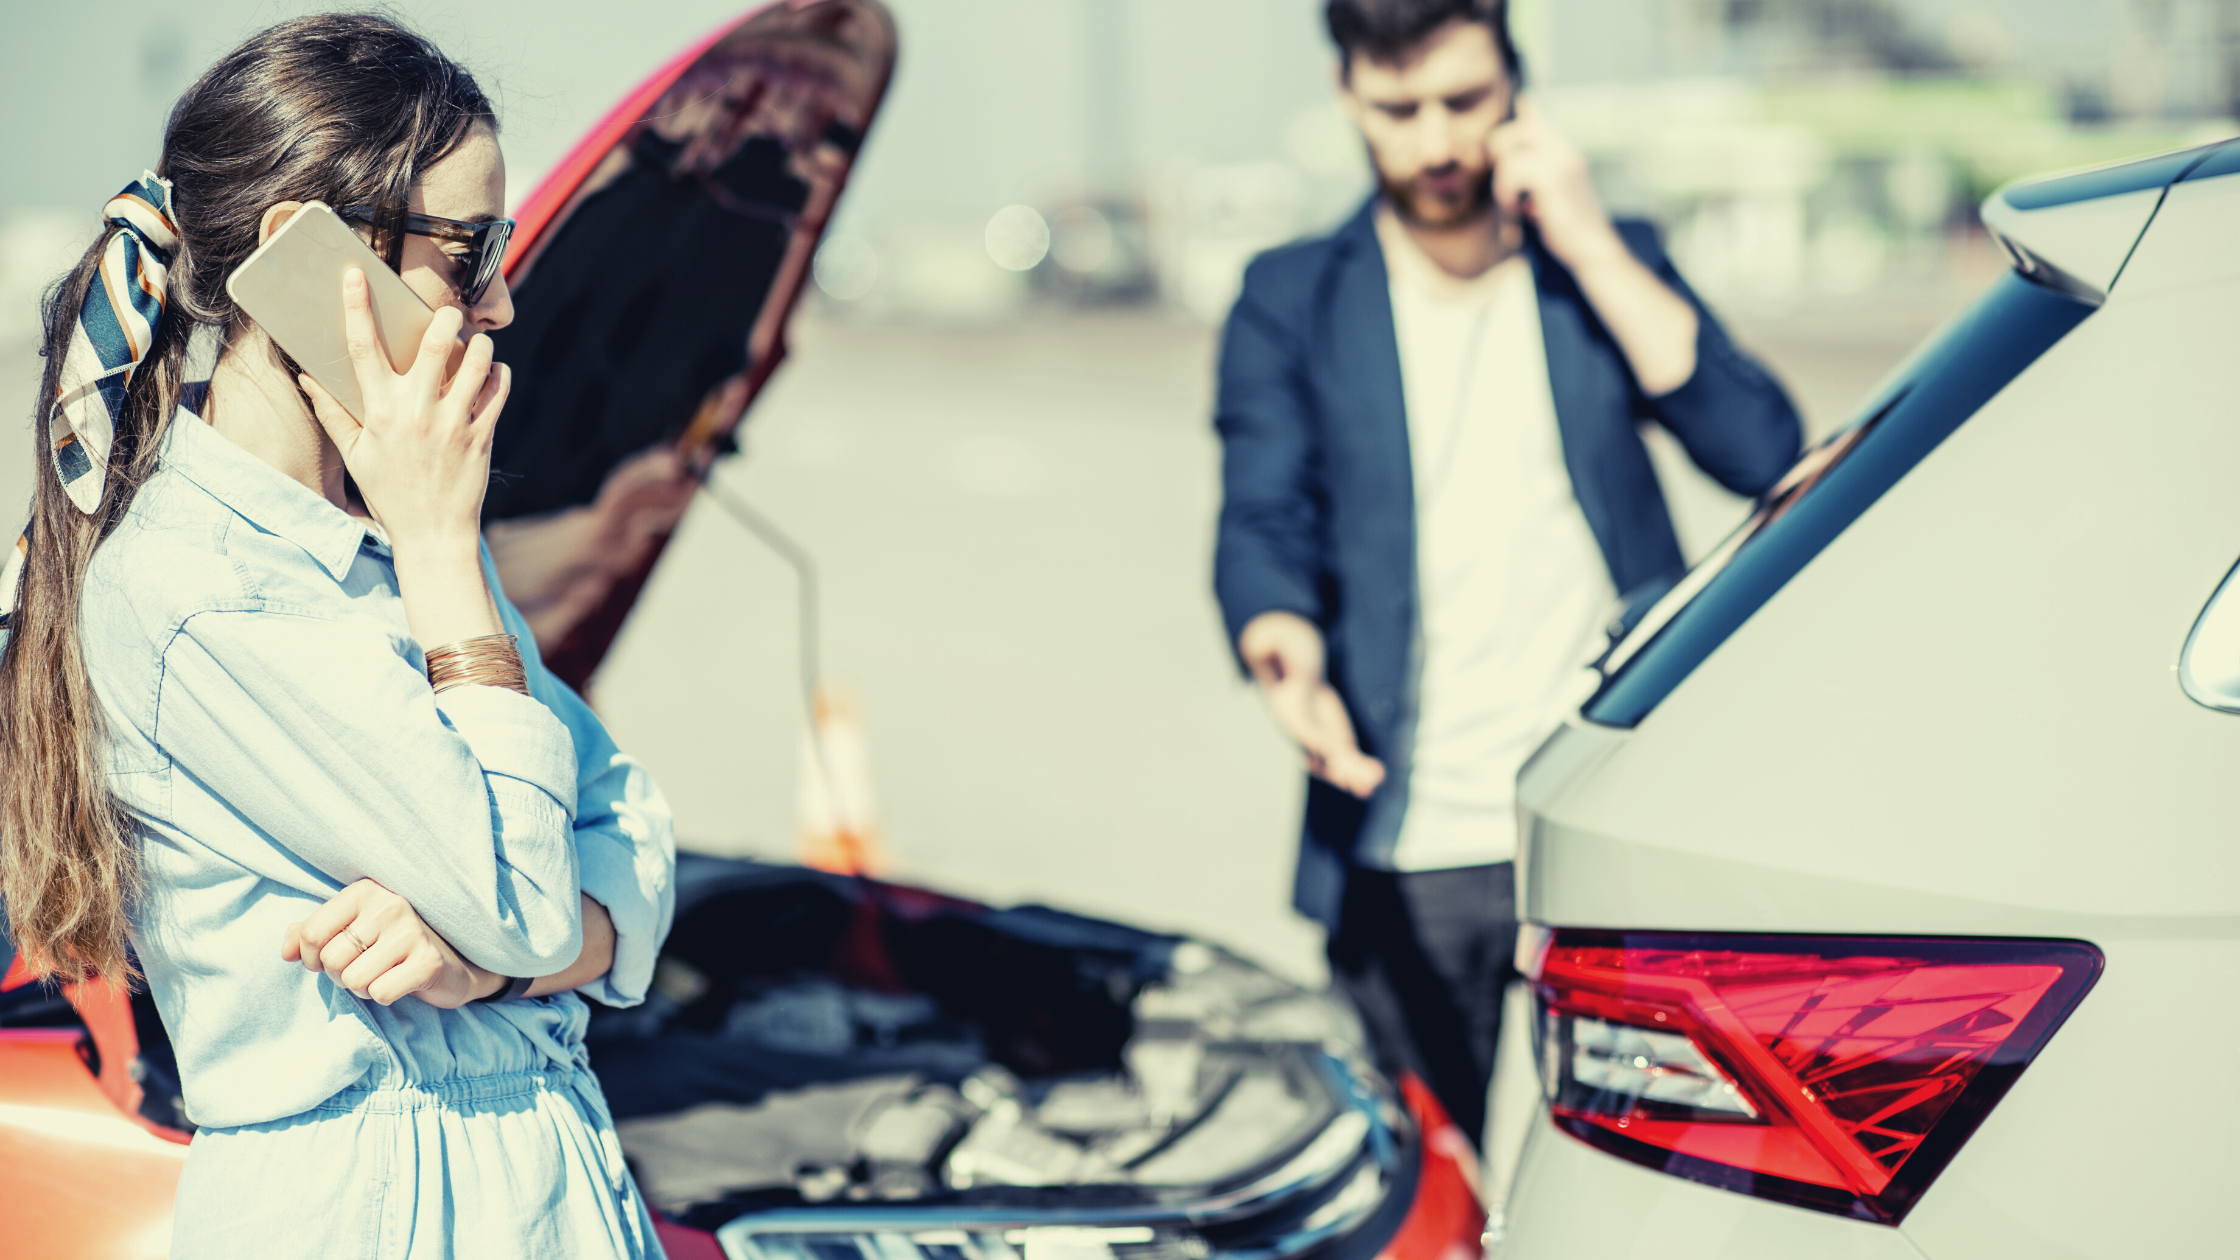 two people on the cell phones after an auto accident